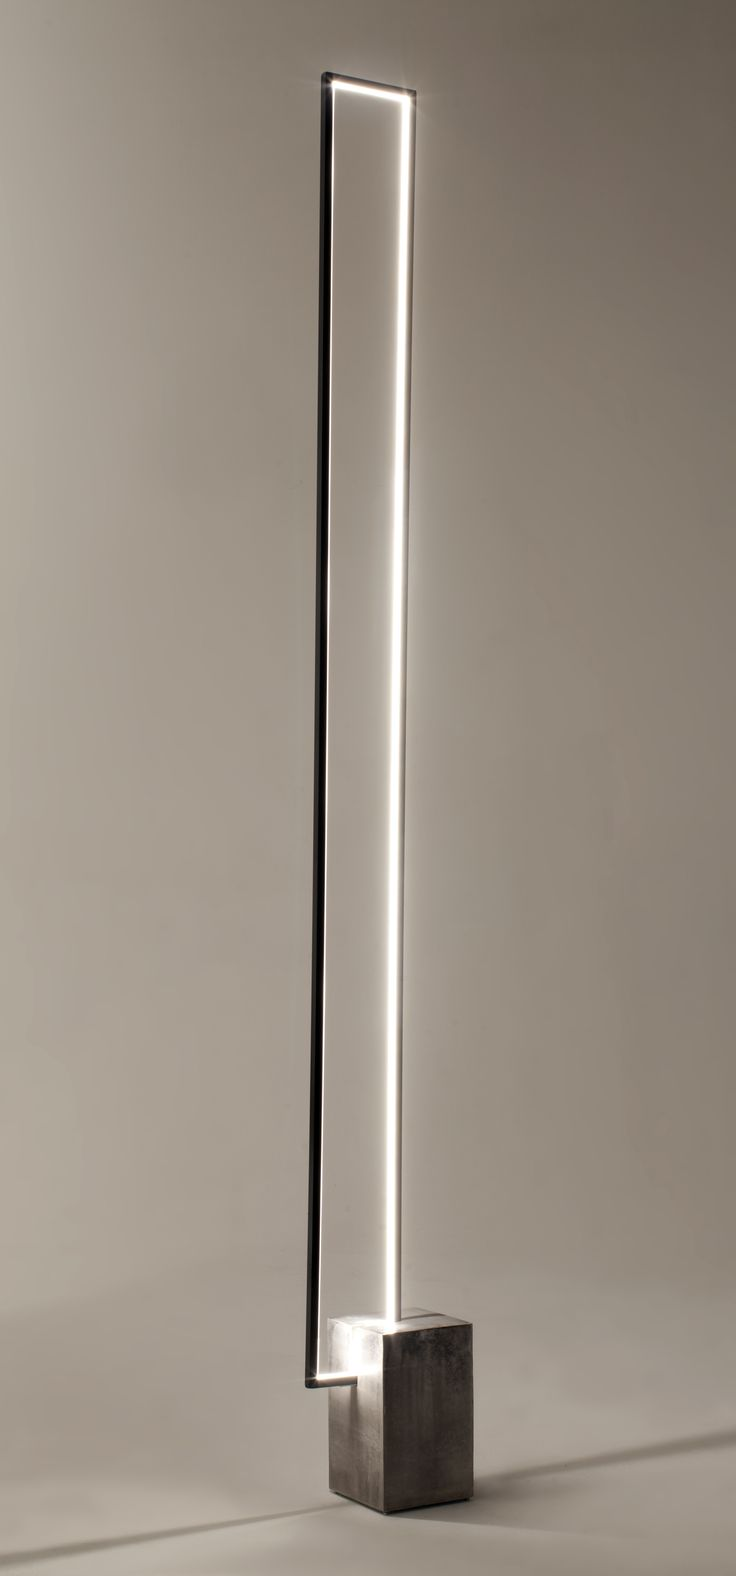 Adding Decor To Your Home Using Floor lamps led